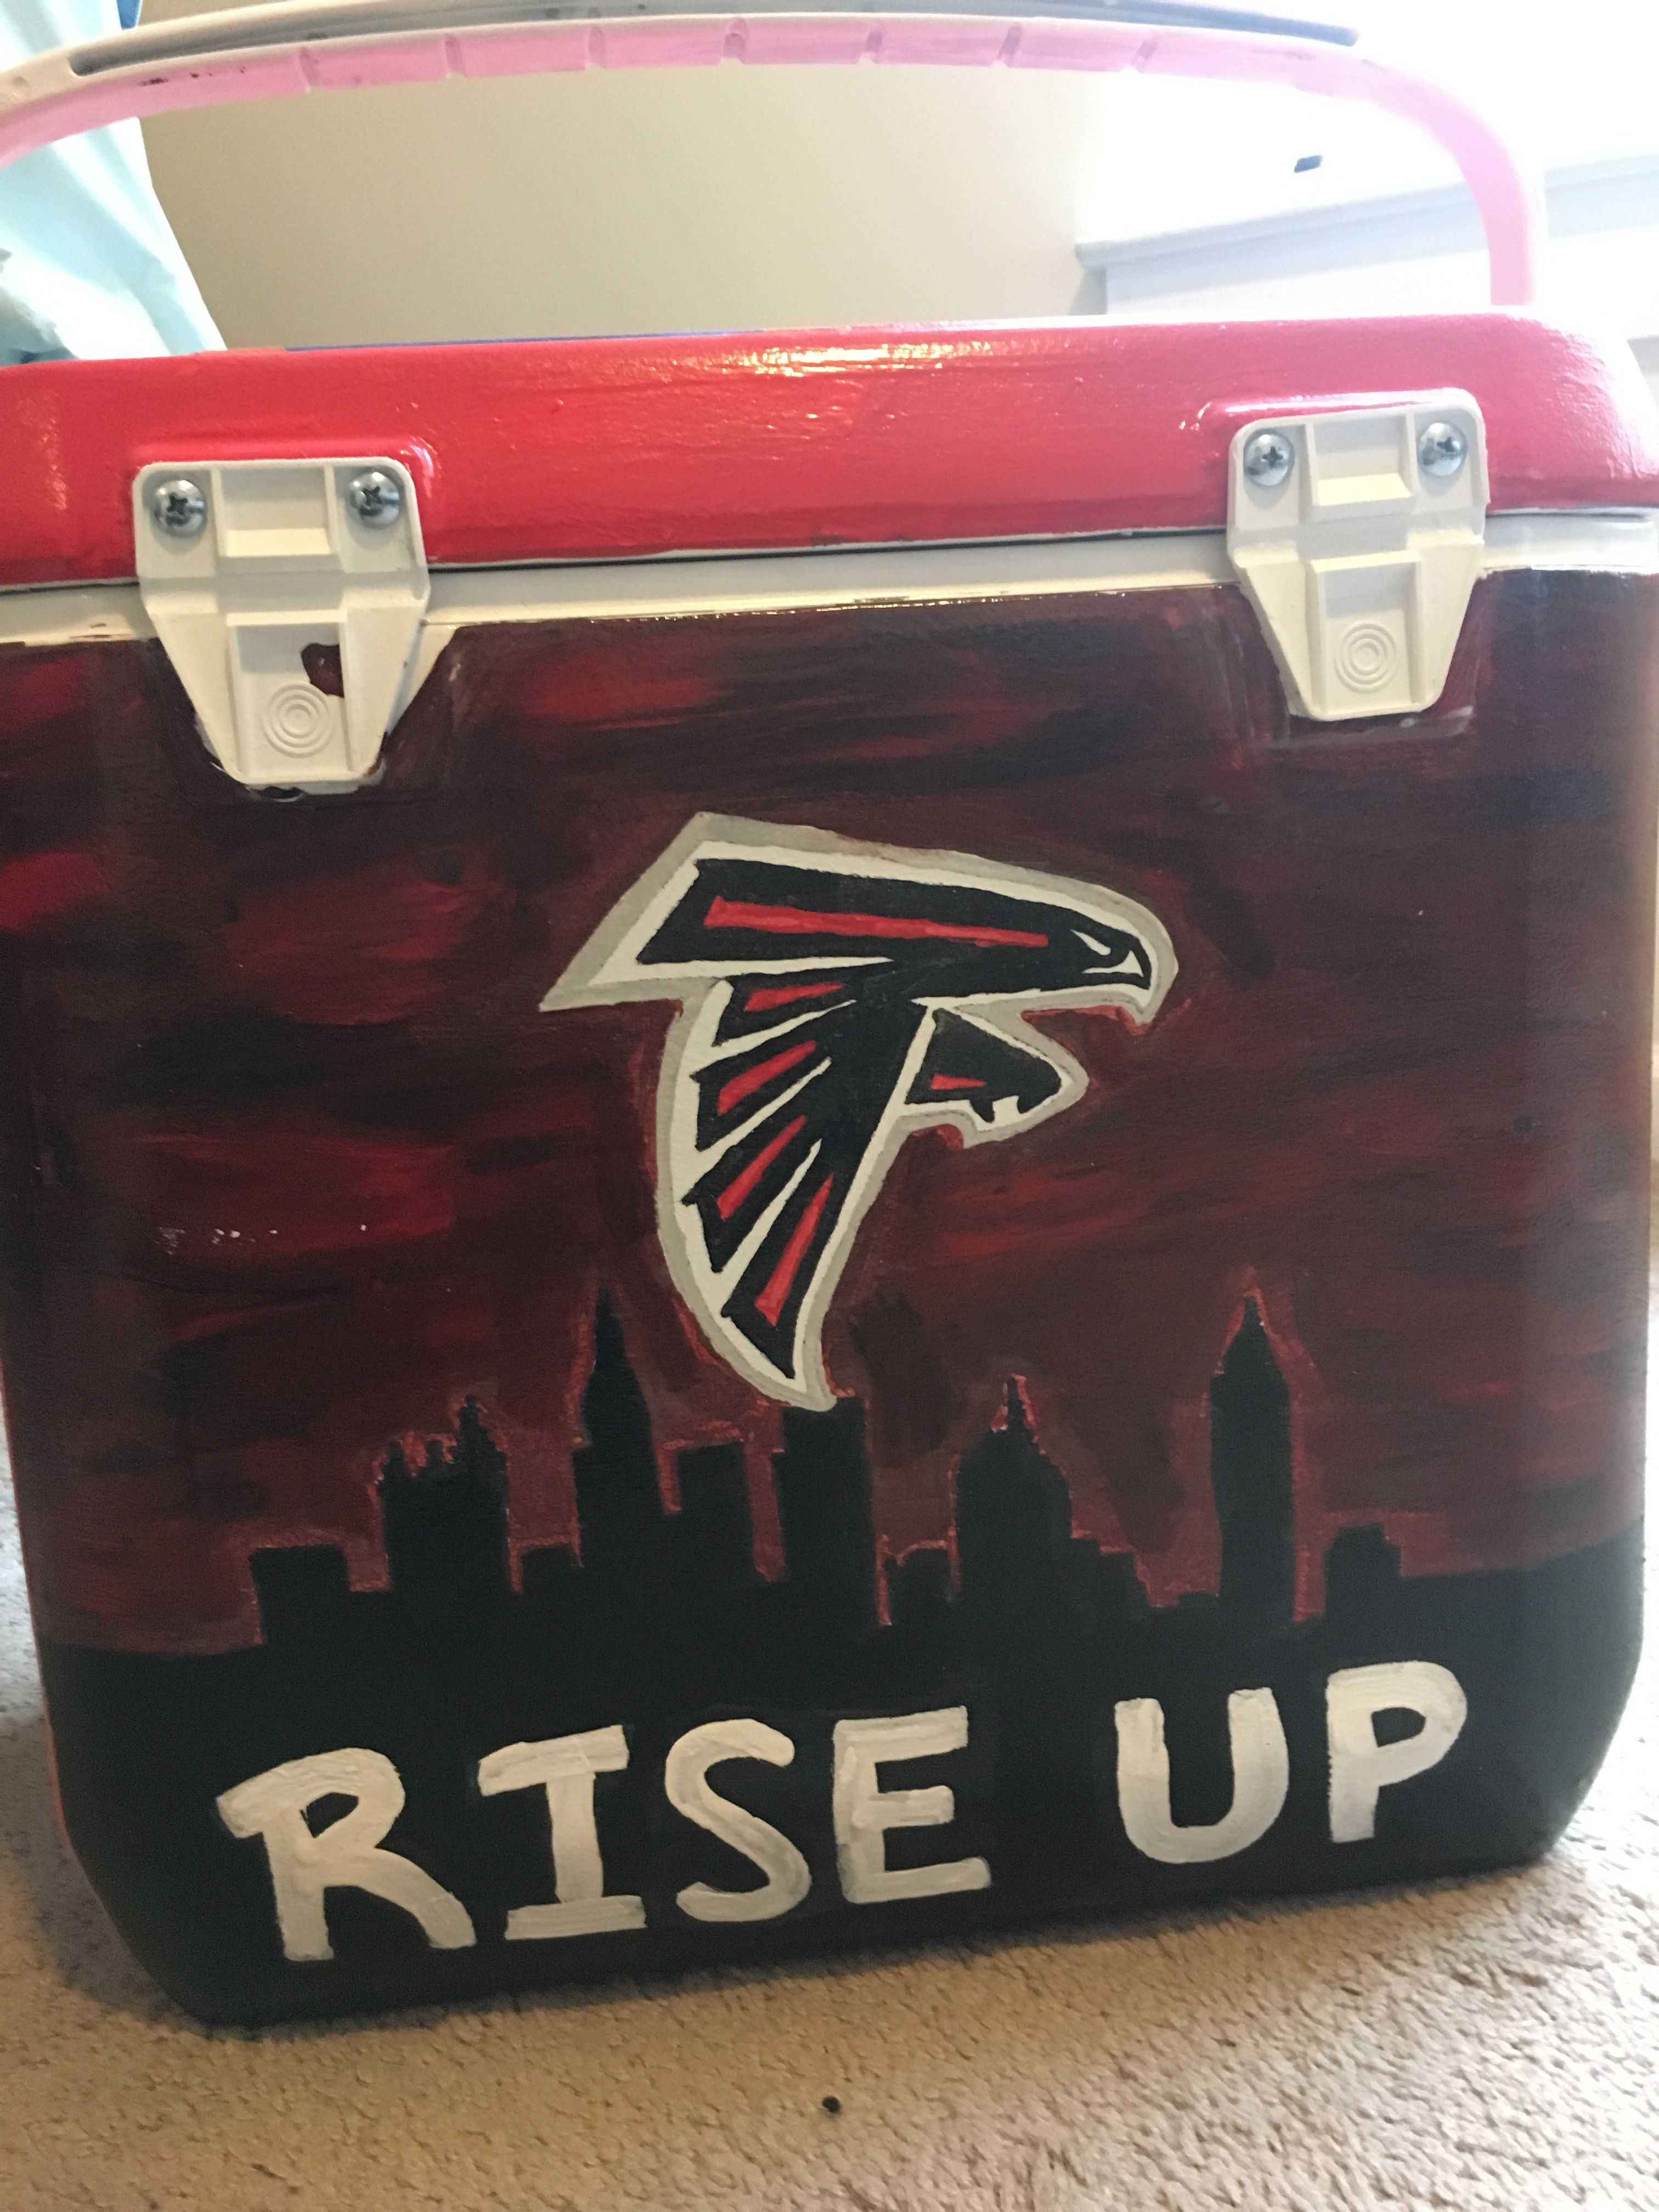 Atlanta Falcons Cooler Painting Atlanta Falcons Painting Atlanta Falcons Cooler Atlanta Falcons Football